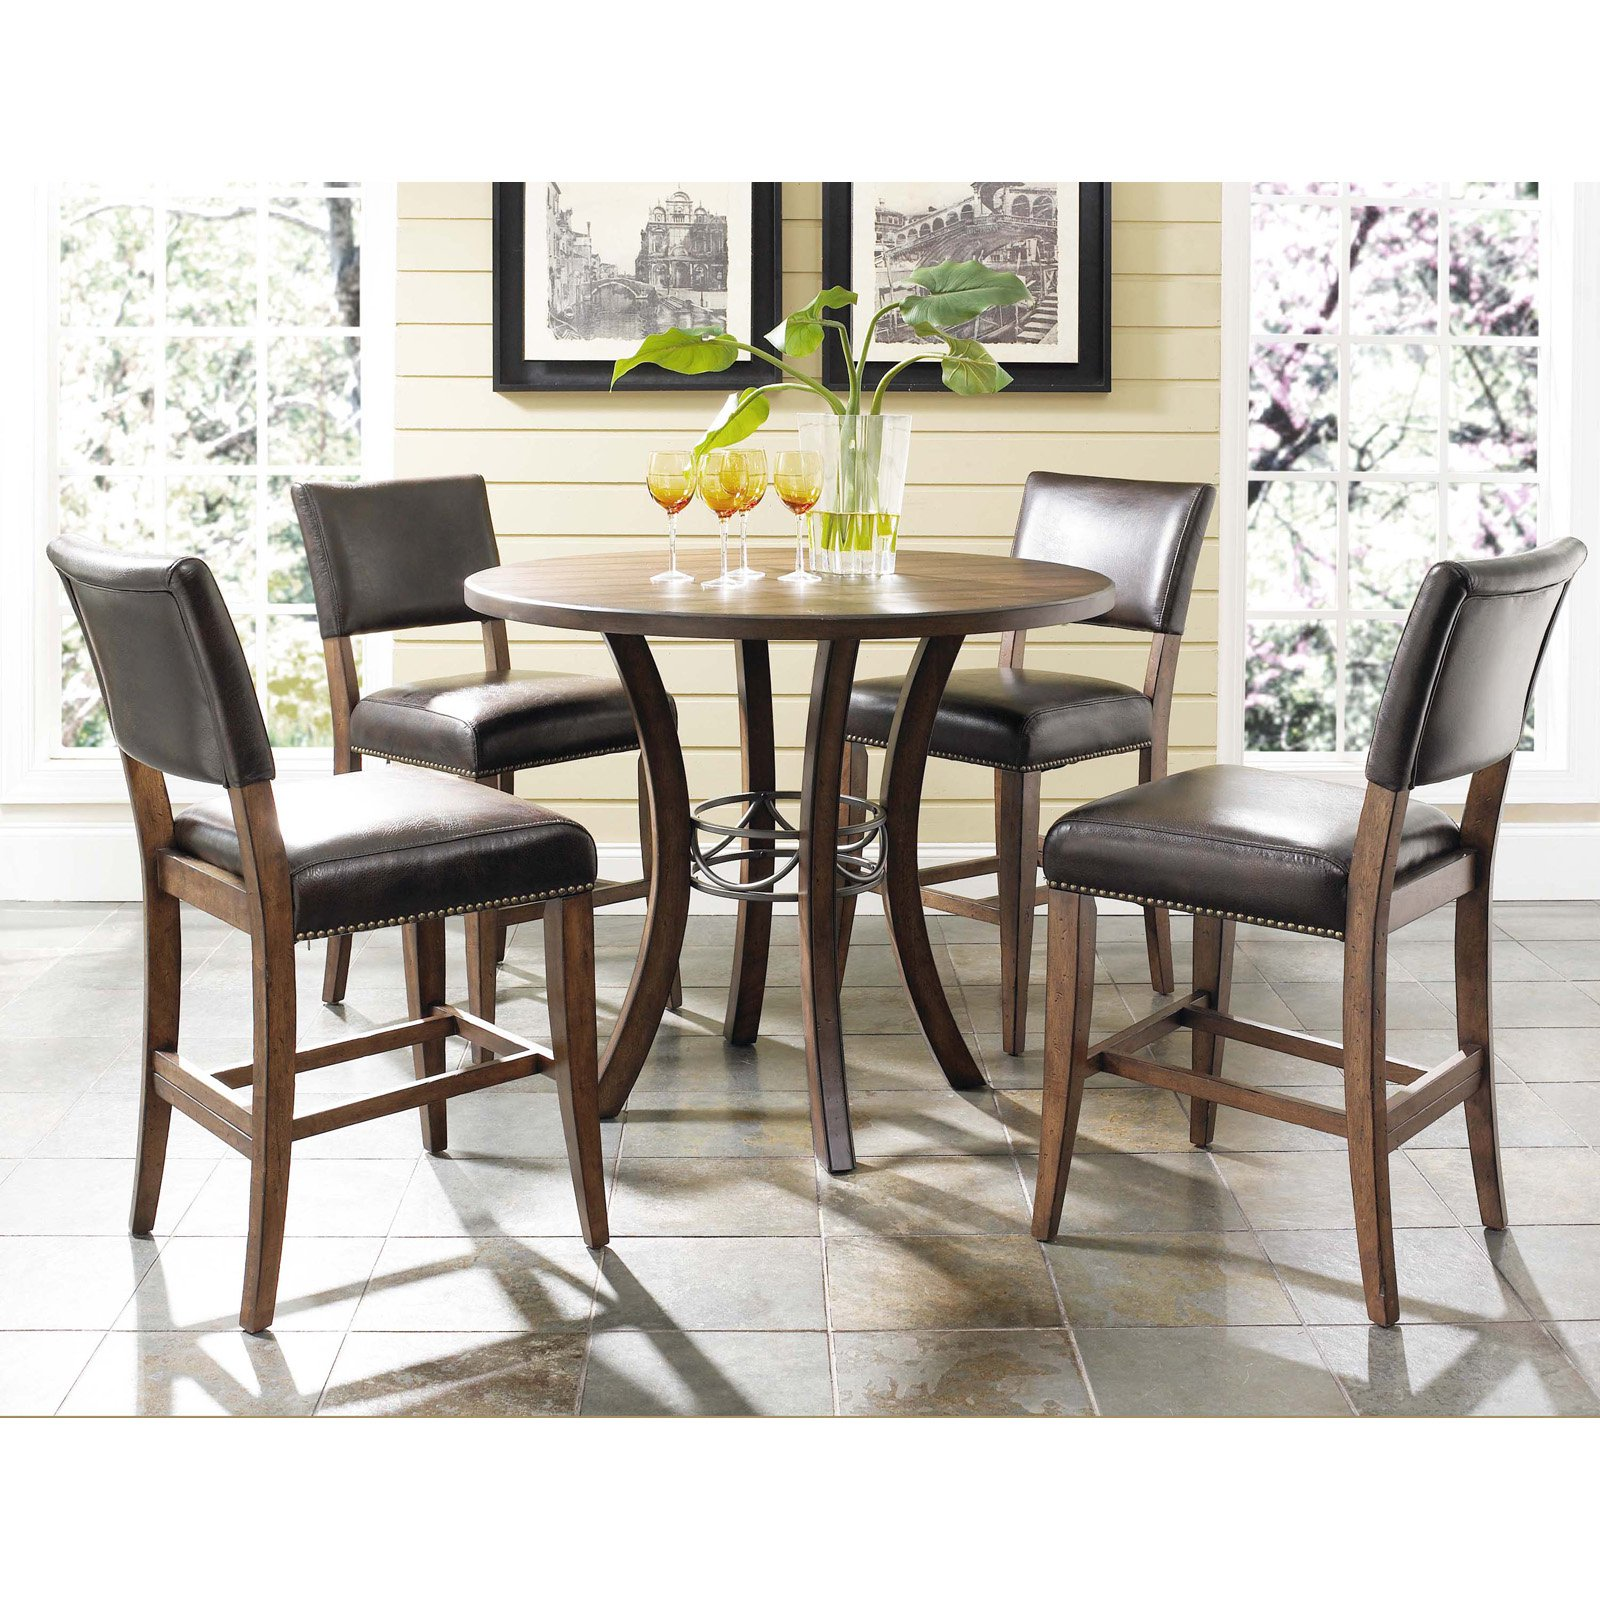 Hillsdale Cameron 5 Piece Counter Height Round Wood Dining Table Set with Parson Chairs  sc 1 st  Walmart & Hillsdale Cameron 5 Piece Counter Height Round Wood Dining Table Set ...